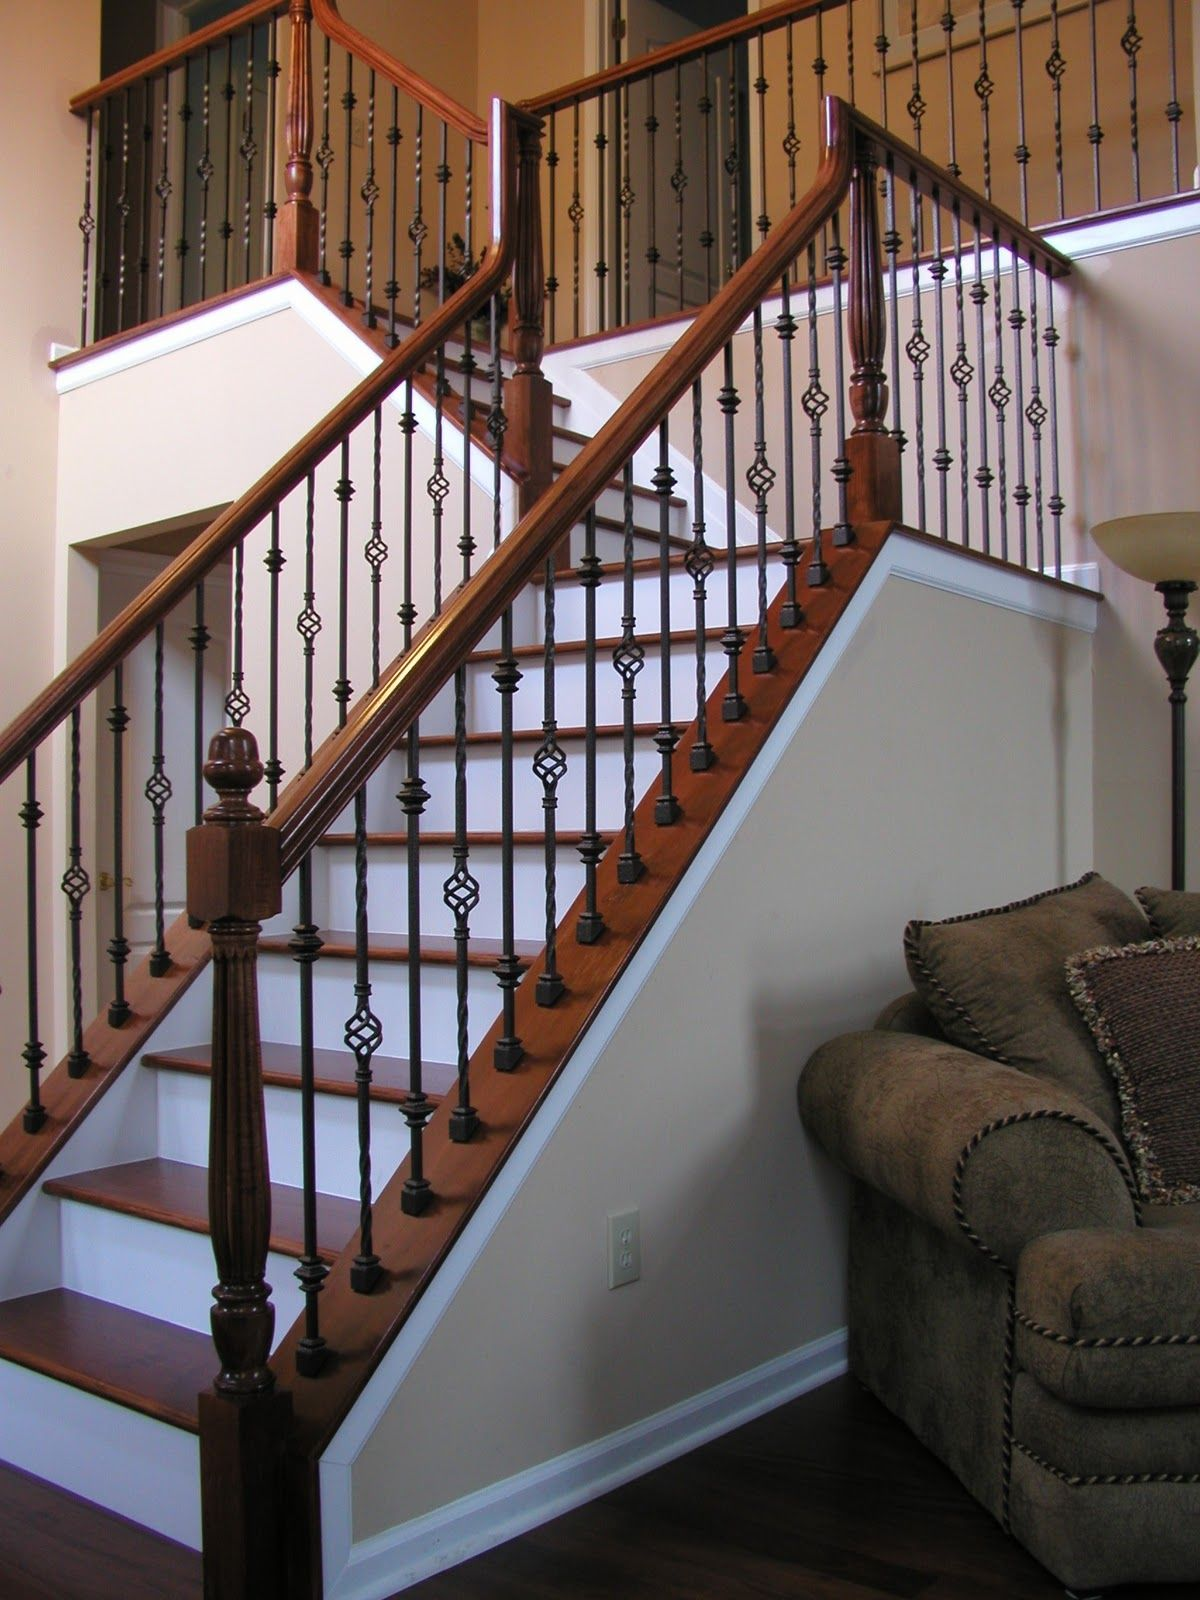 Wrought Iron Stair Railings Interior Lomonaco S Concepts Home Decor Baers Wood Handrail